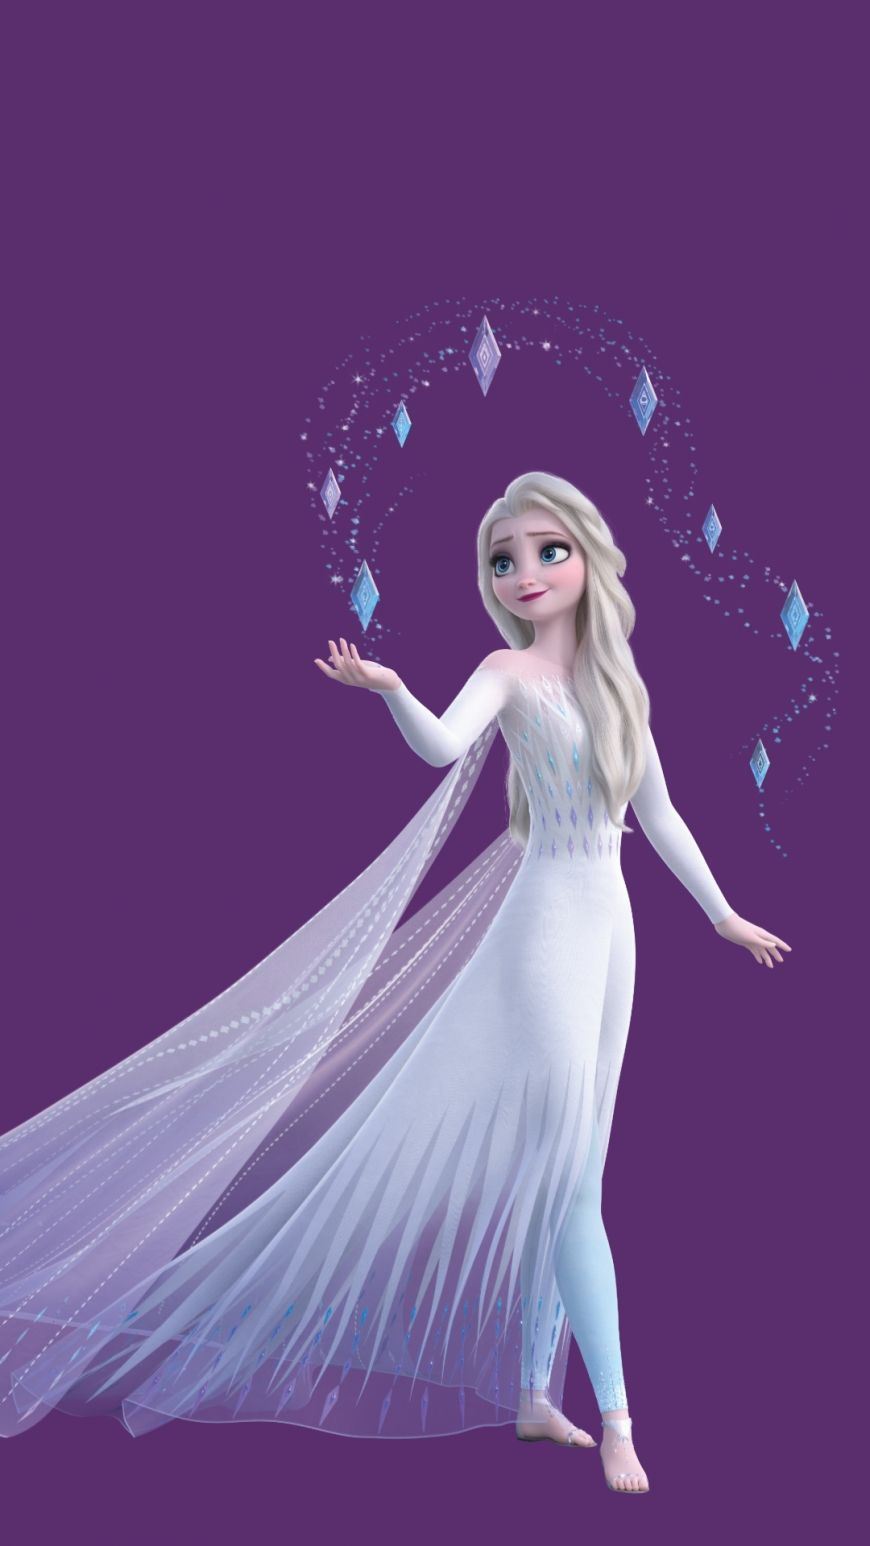 Frozen 2 Hd Wallpaper Elsa White Dress Hair Down Mobile In 2020 Disney Princess Pictures Disney Princess Drawings Disney Princess Frozen